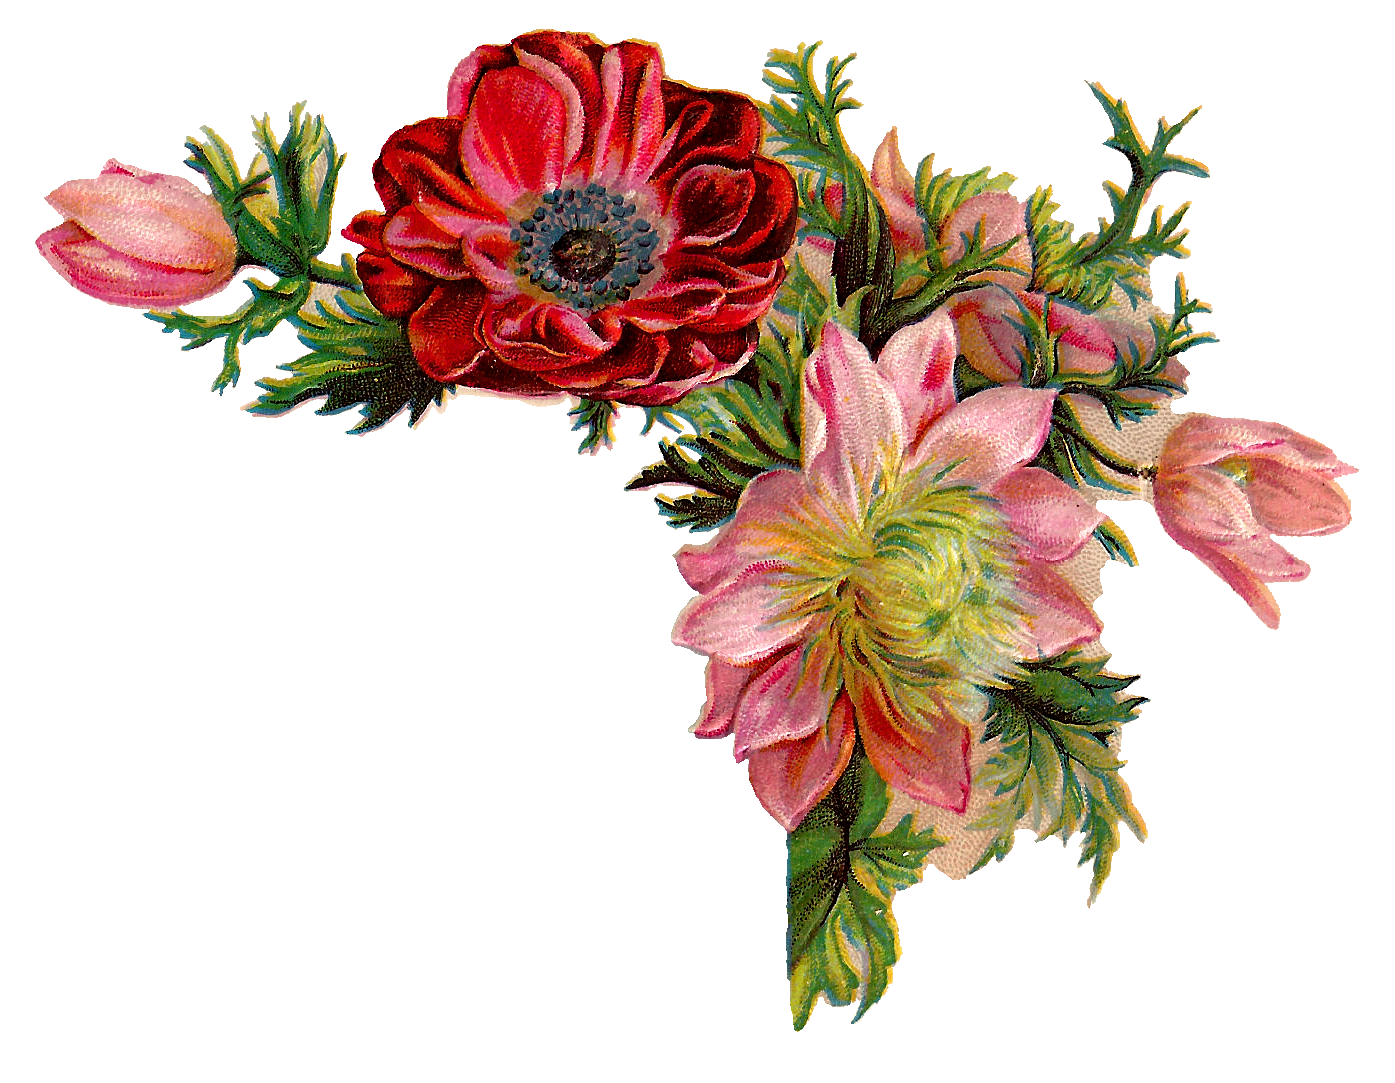 Free Digital Flower Images of Corner Design with Red and